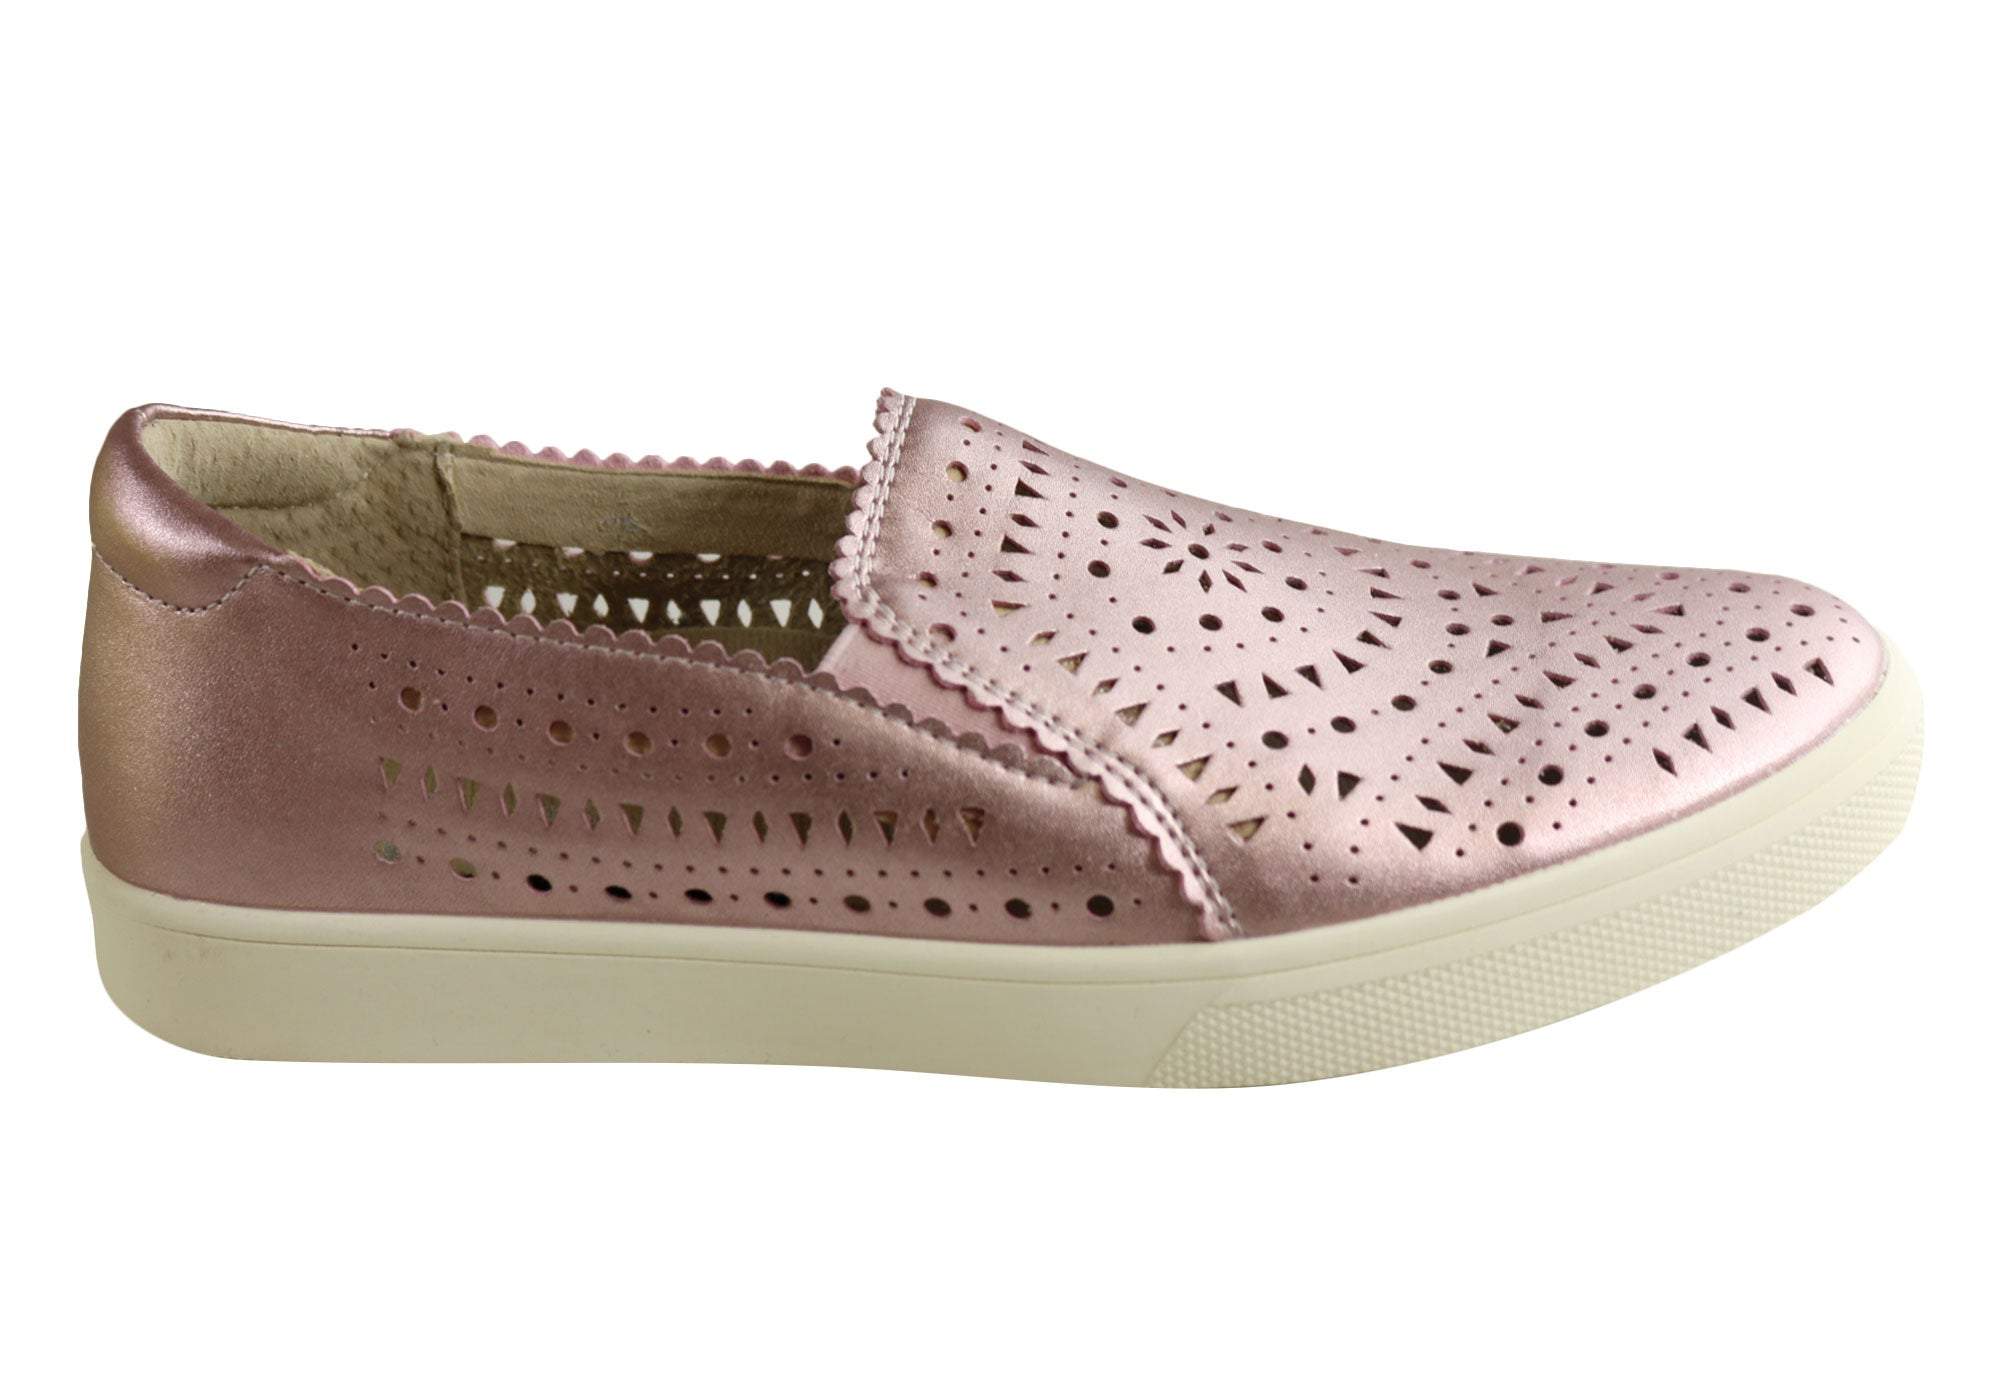 Scholl Orthaheel Yale Womens Comfort Supportive Leather Moccasin Shoes SSA